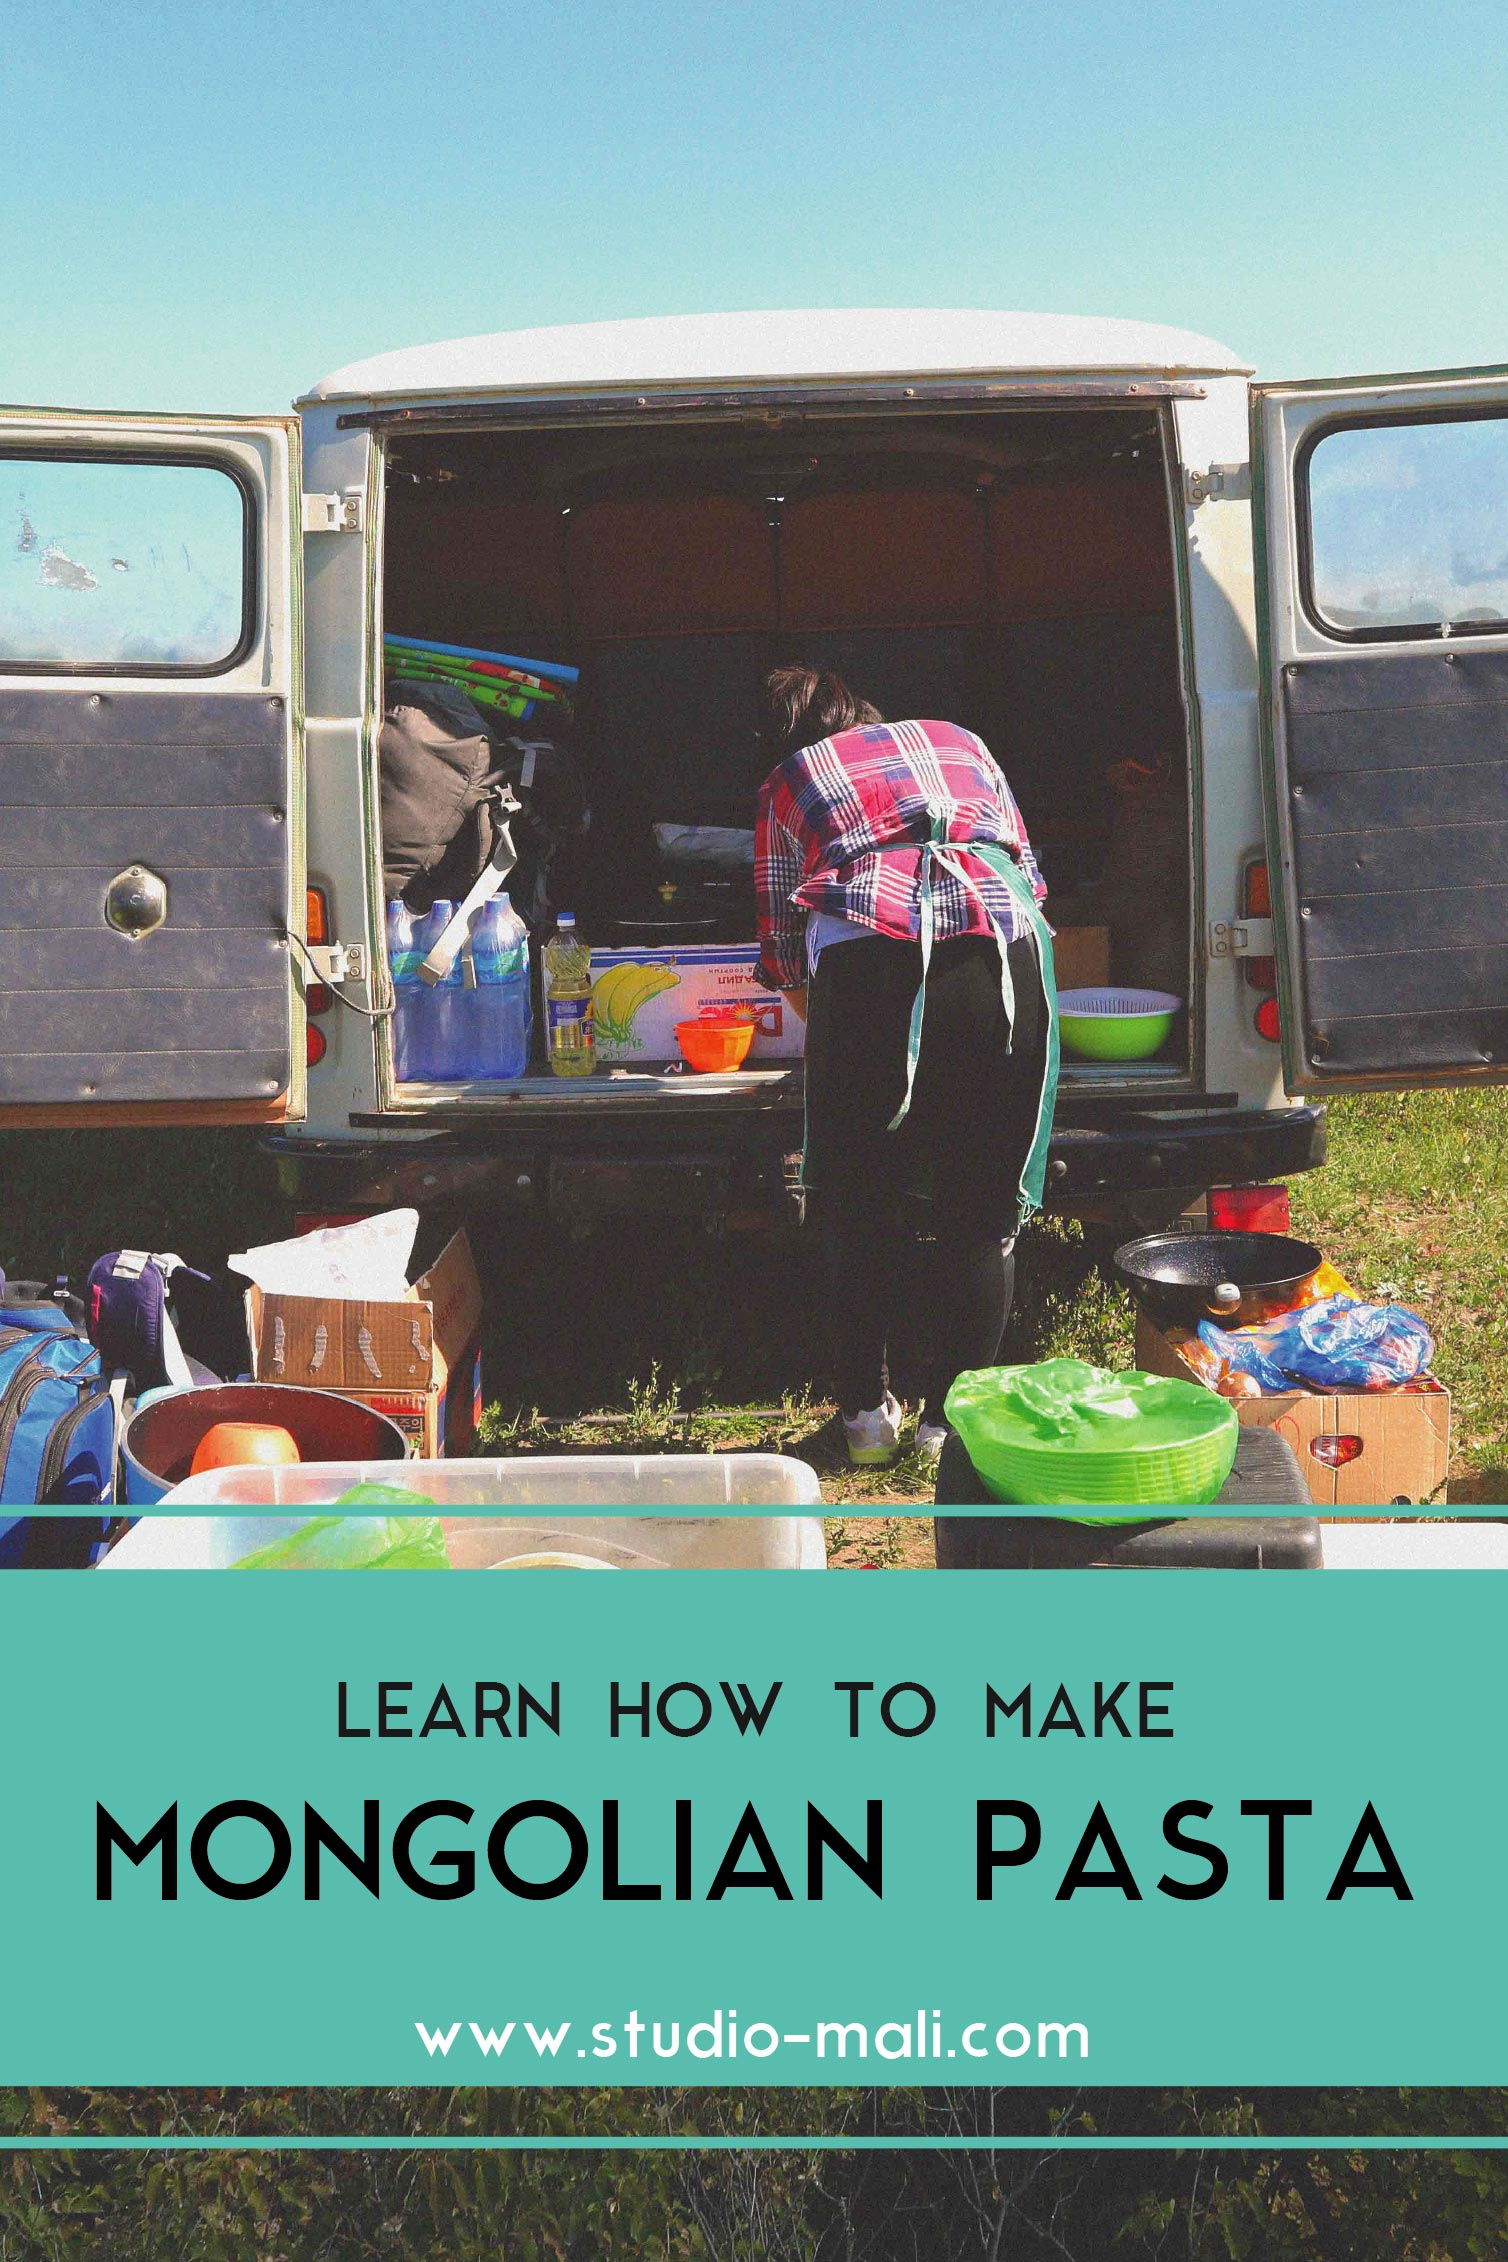 learn how to make mongolian pasta-14.jpg